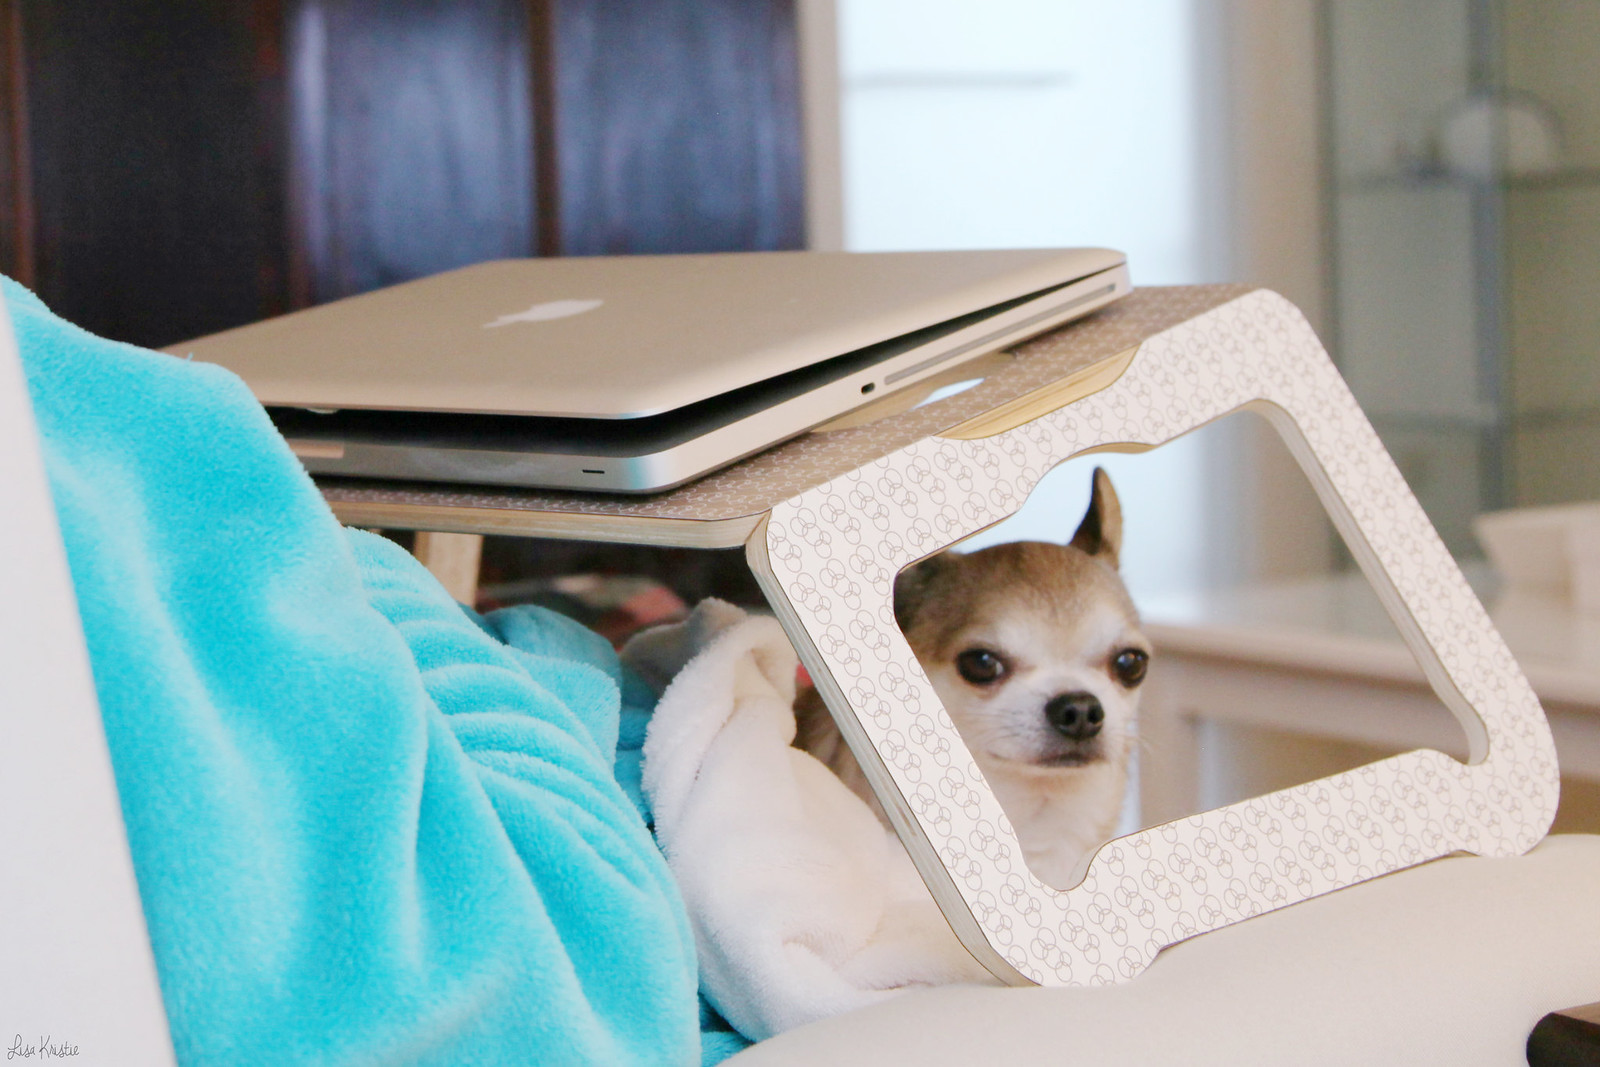 wolfthedog chihuahua little tiny dog puppy fits under ikea laptop tray stand support lap cute adorable small wolf